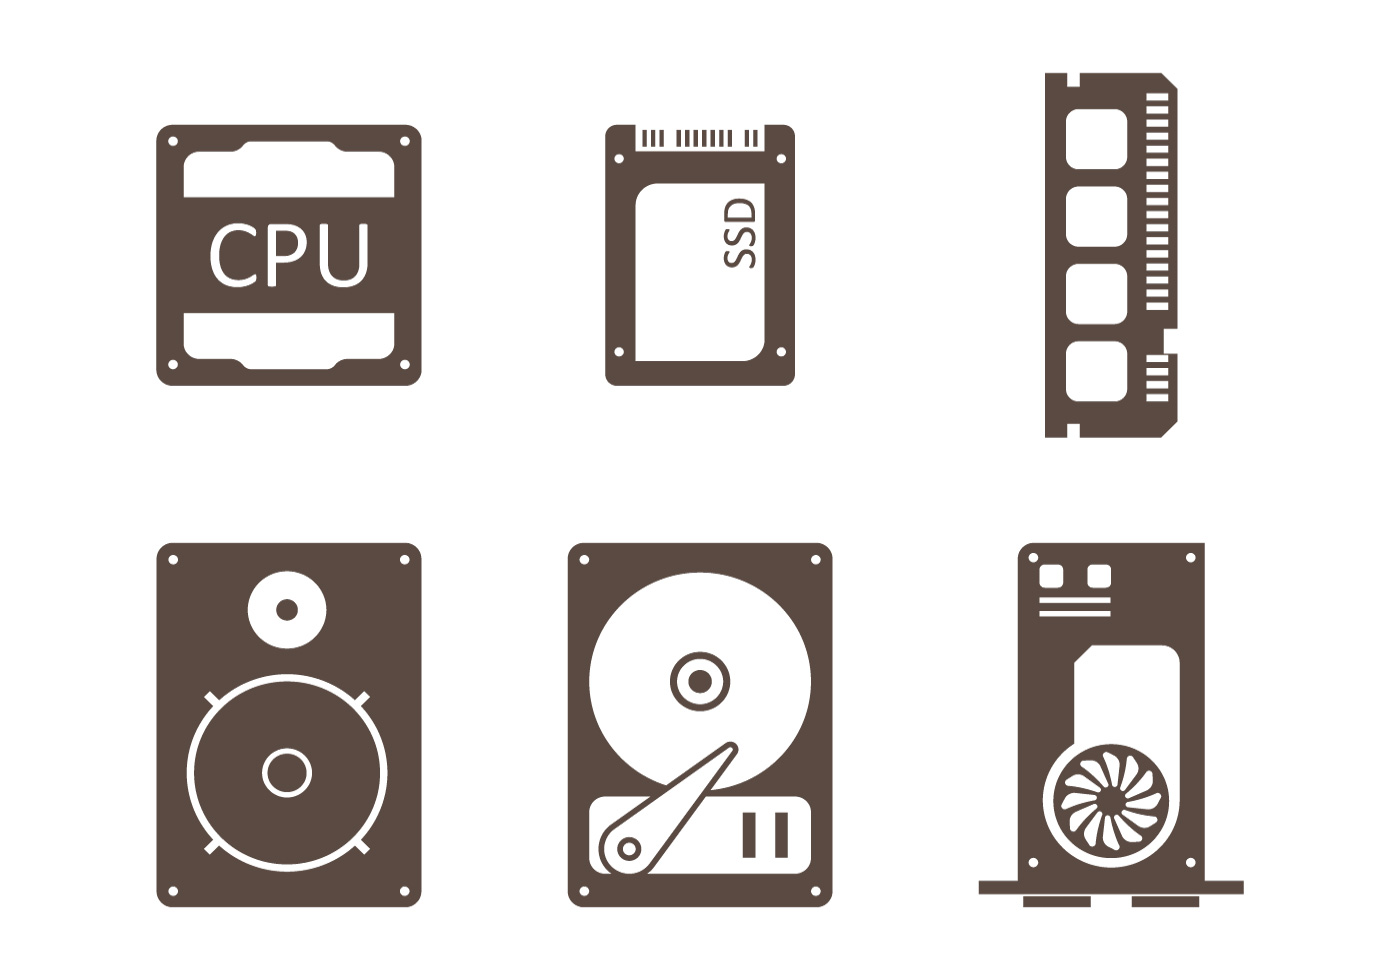 Motherboard Free Vector Art 7712 Downloads Simple Circuit Diagram Symbols Seamless